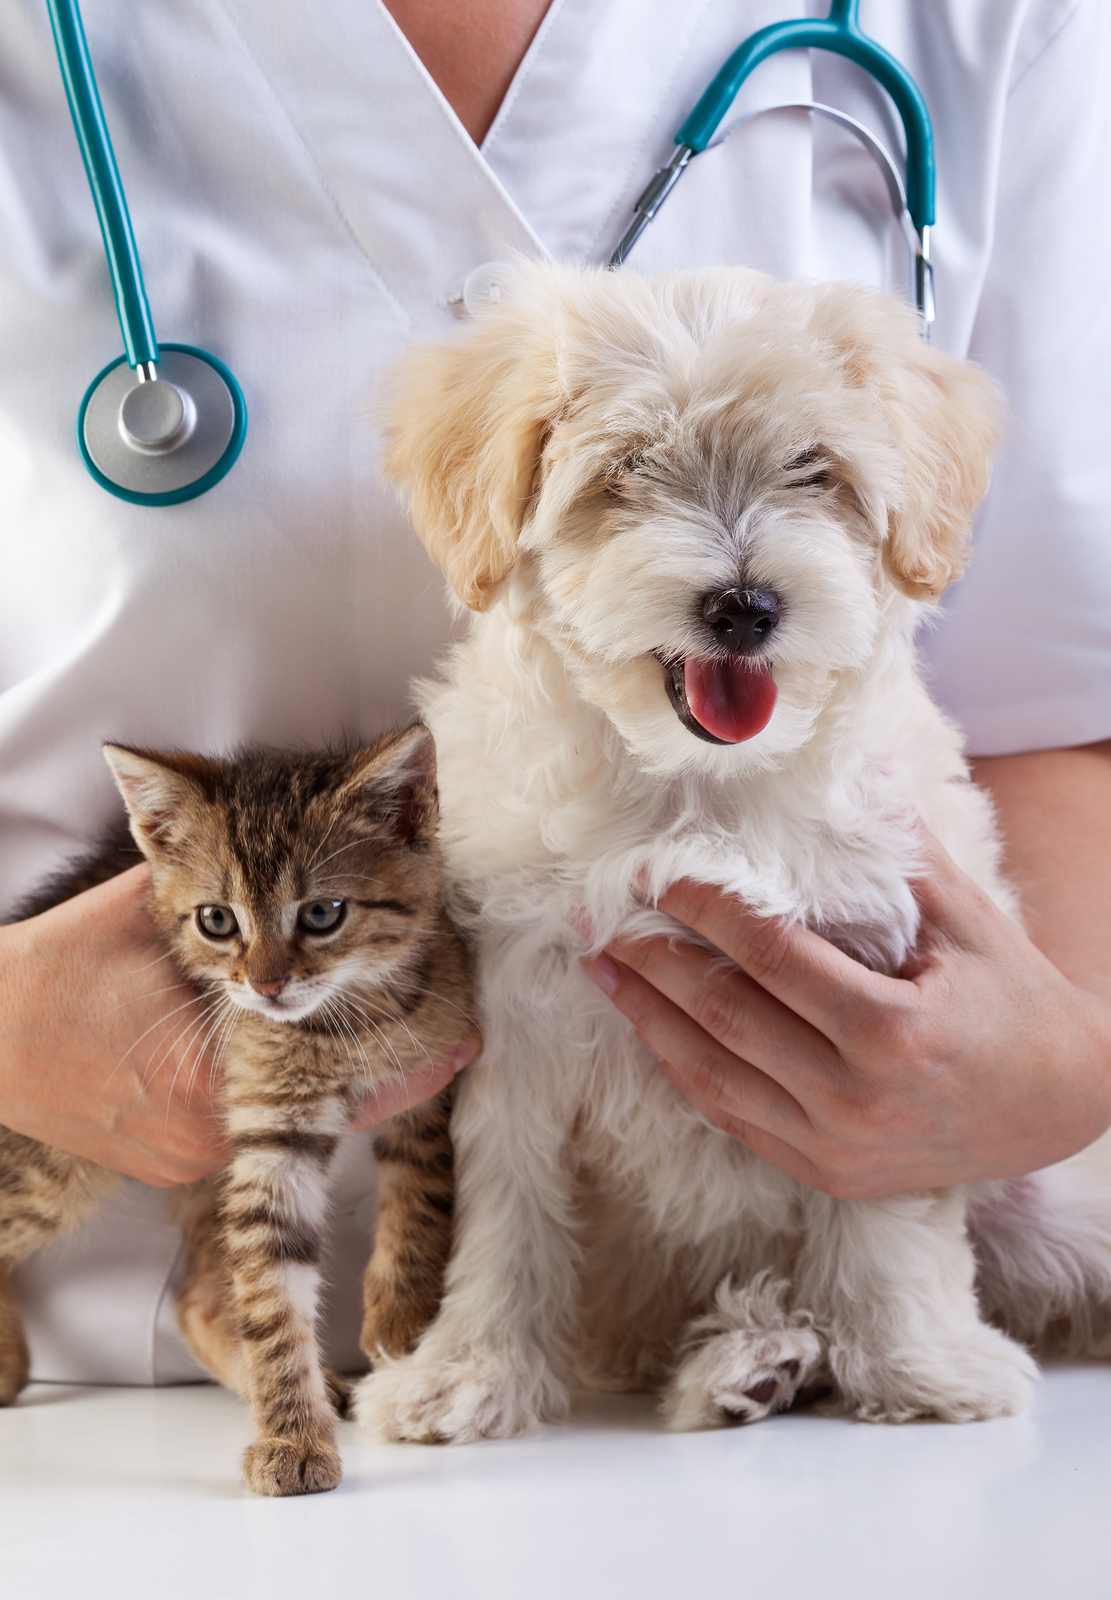 Your Pet Might Have Ringworm If